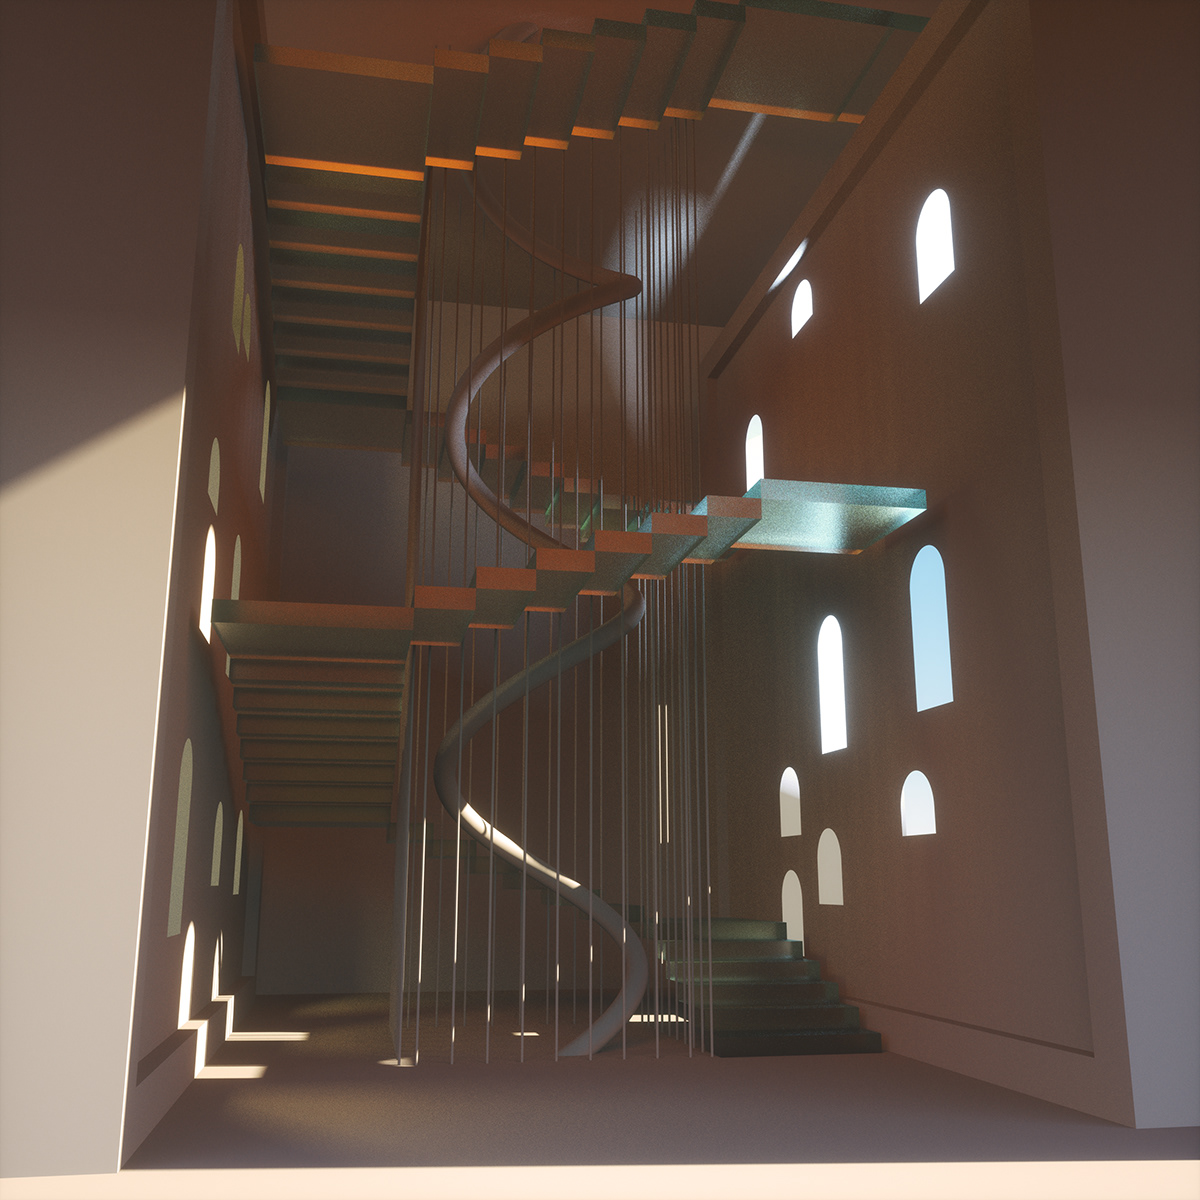 solid geometry Cinema 4d 3D ILLUSTRATION  sunlight Space  objects interieur